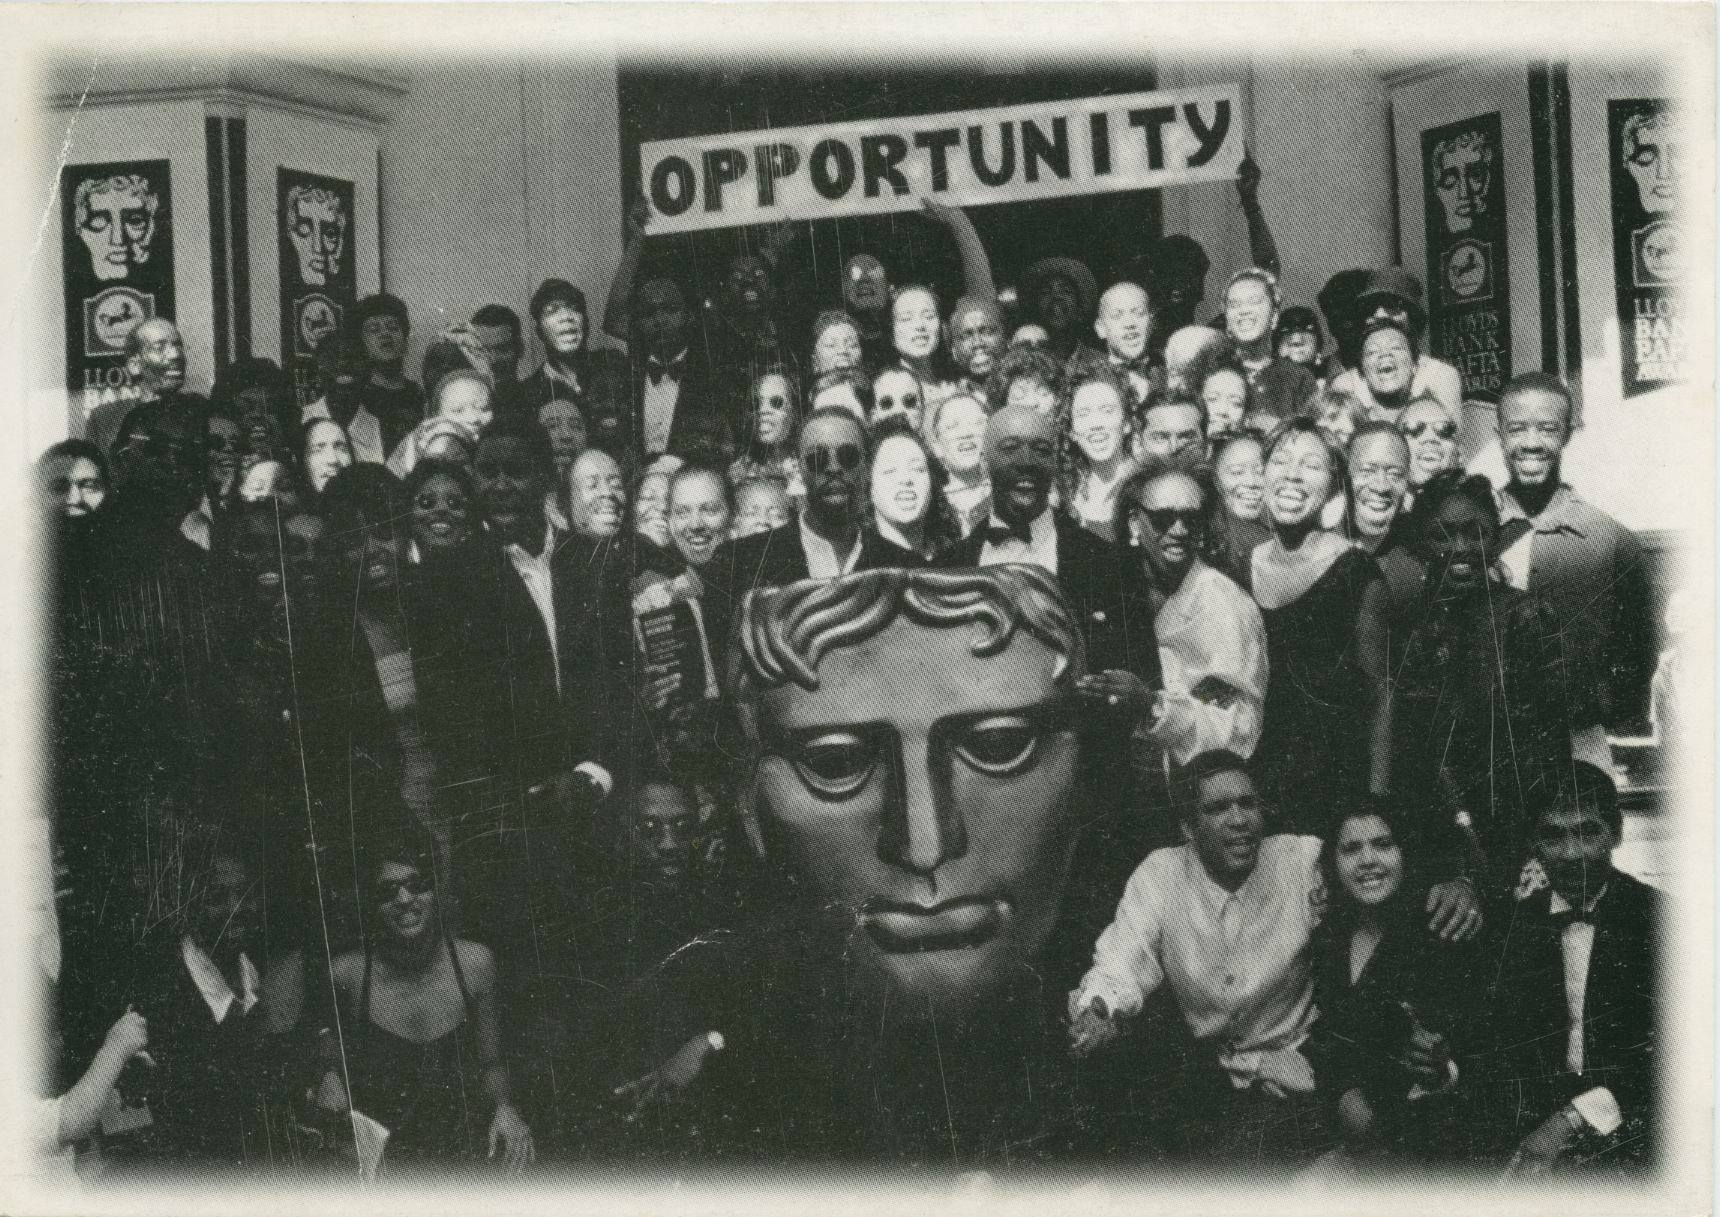 Throughout the 1990's Corizon Visual Network peacefully protested the BAFTA's three times about lack of #diversity and #opportunity within the film and tv industry